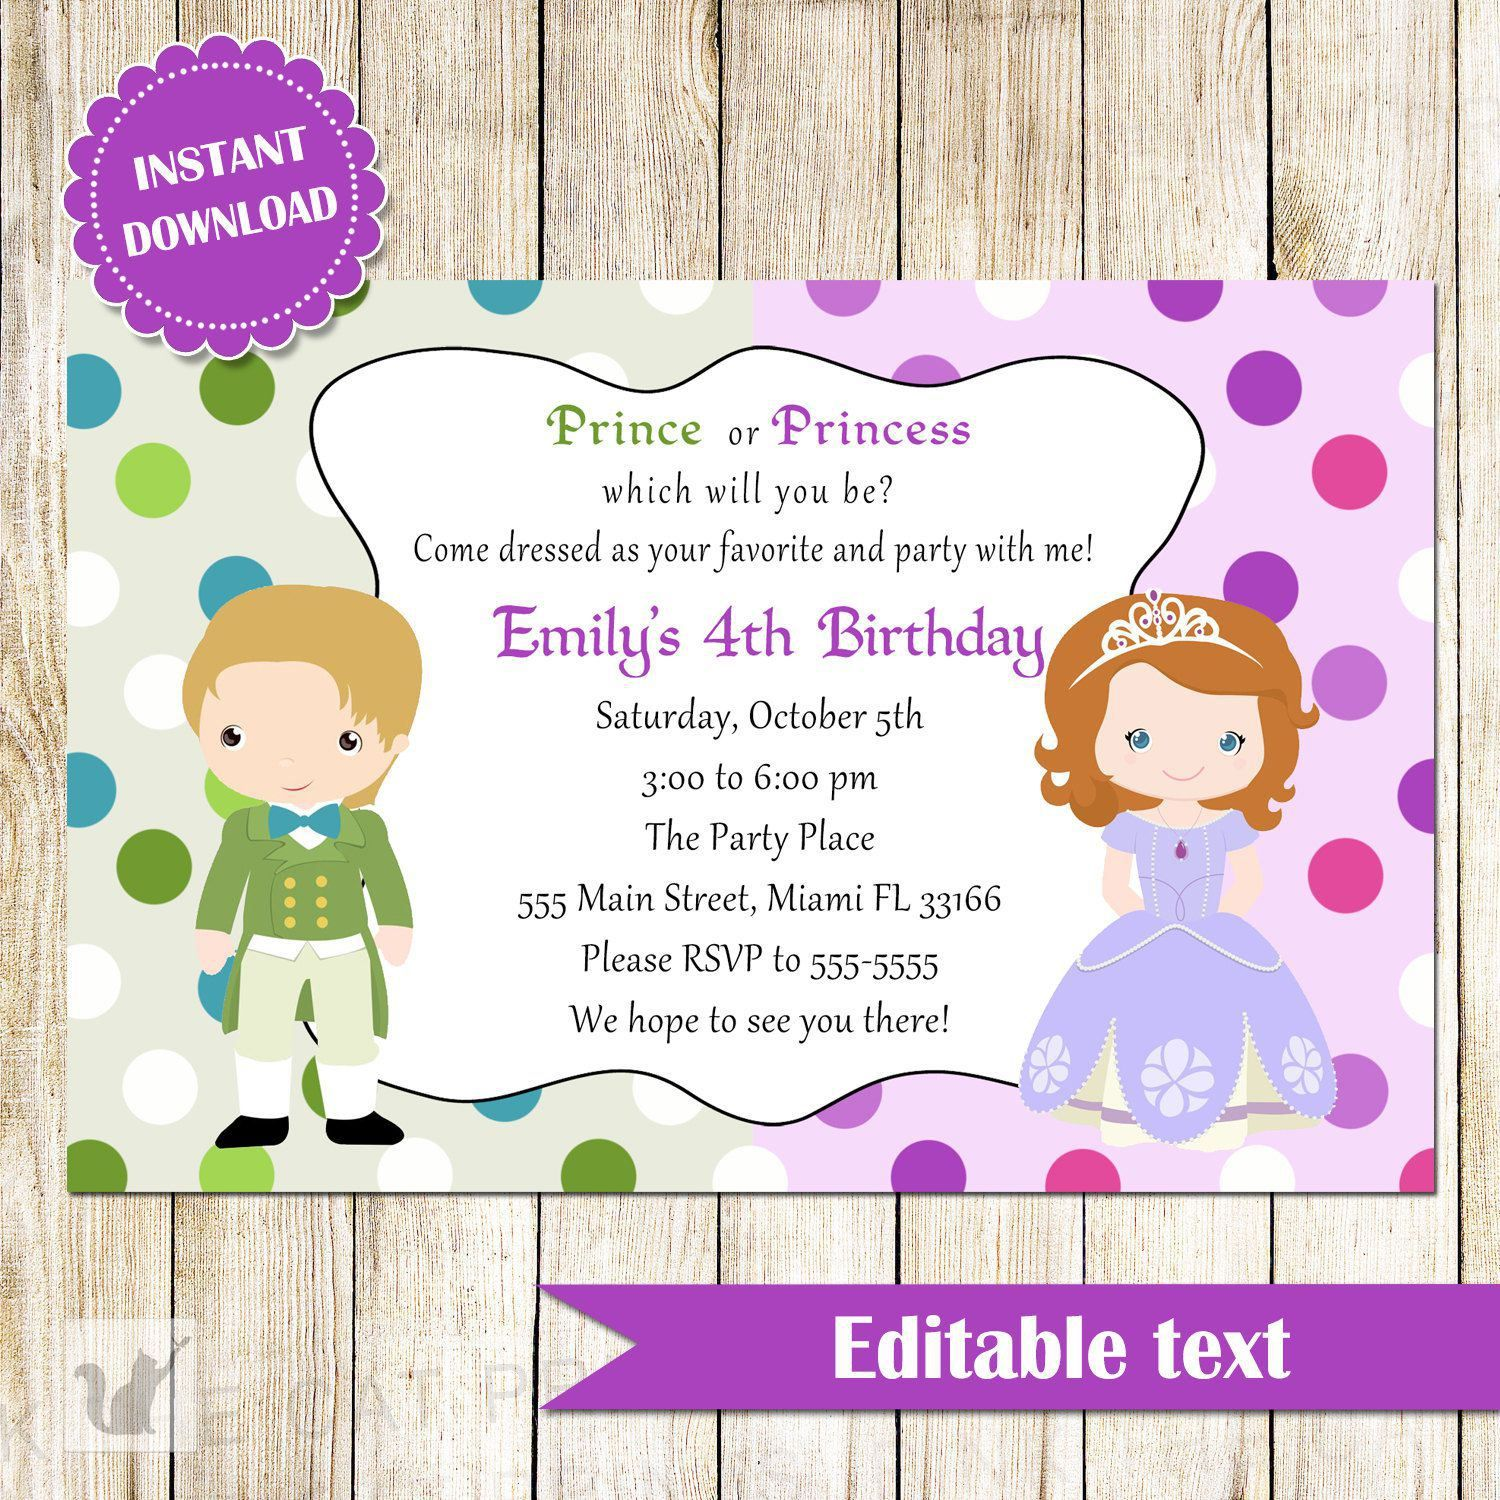 Invite Templates Invite Templates Free Superb Invitation - Princess birthday invitation templates free